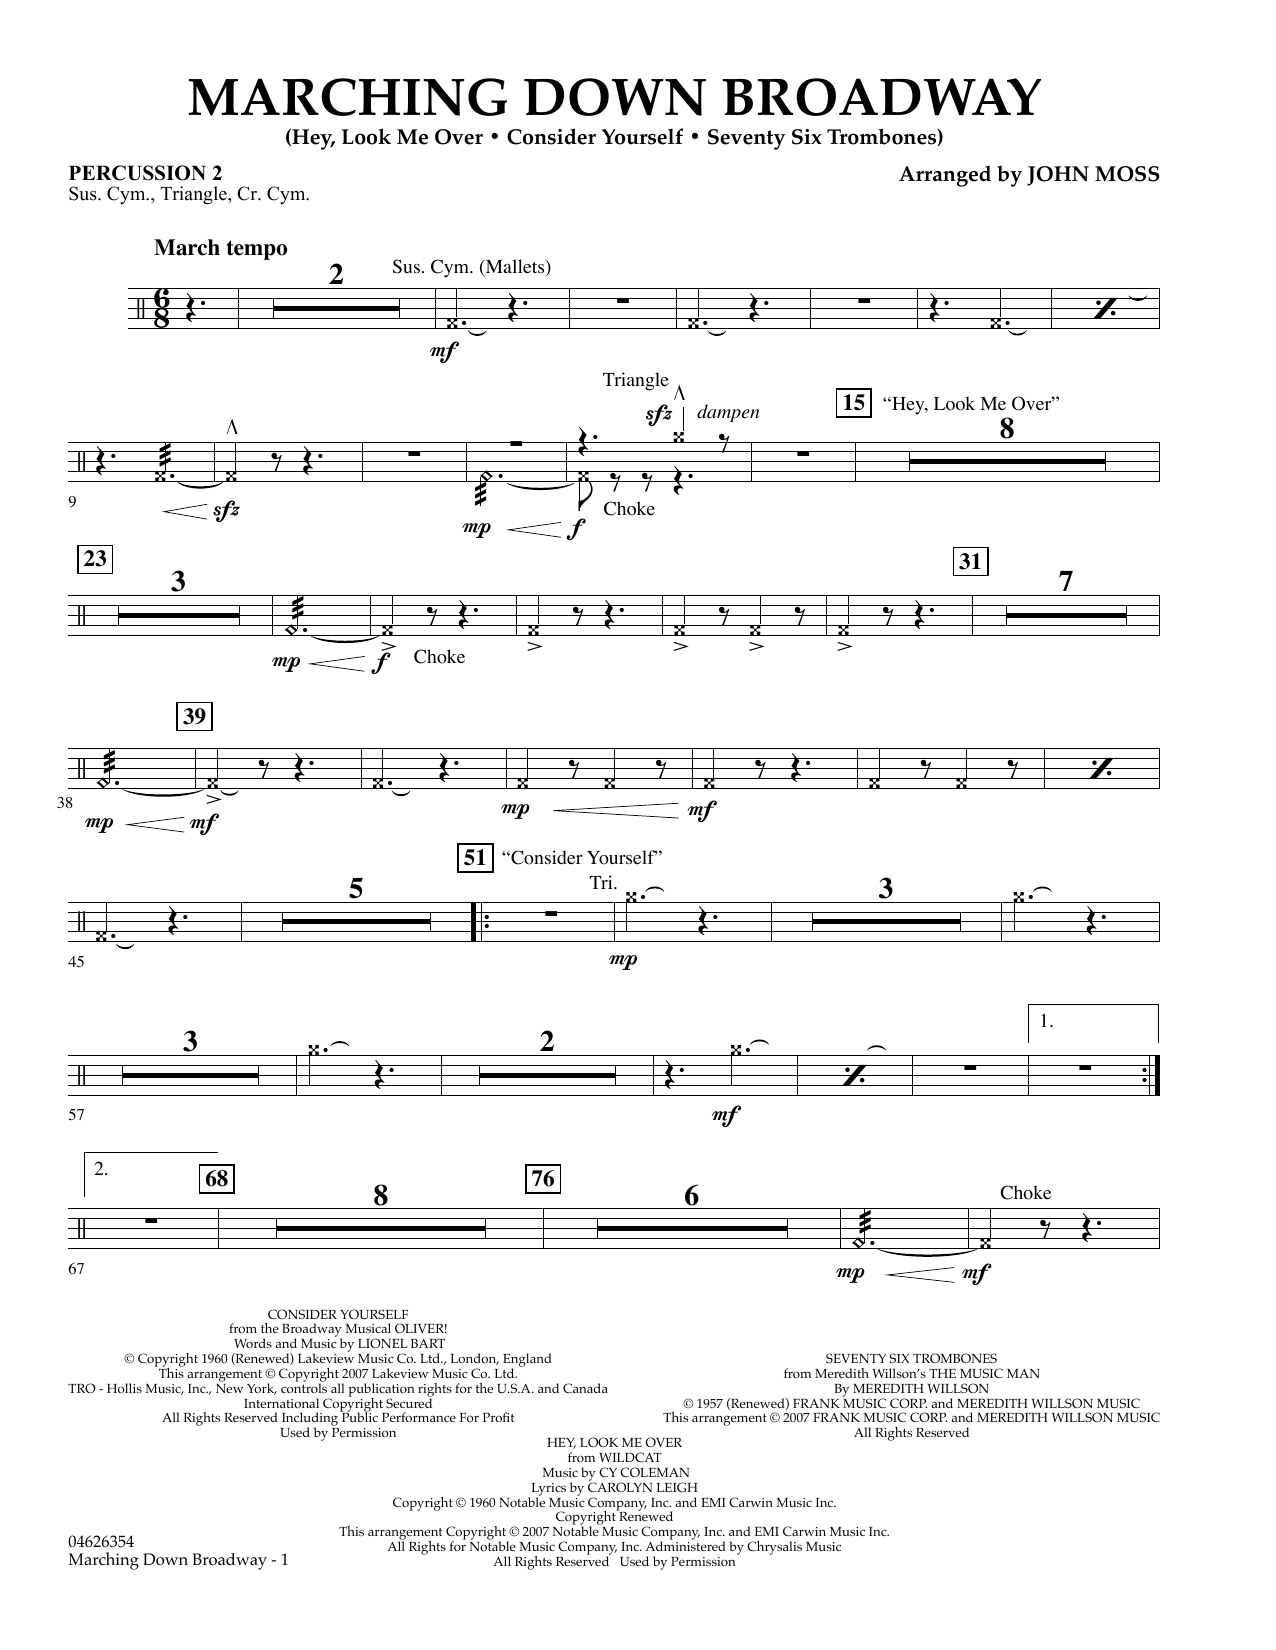 Marching Down Broadway - Percussion 2 (Orchestra)